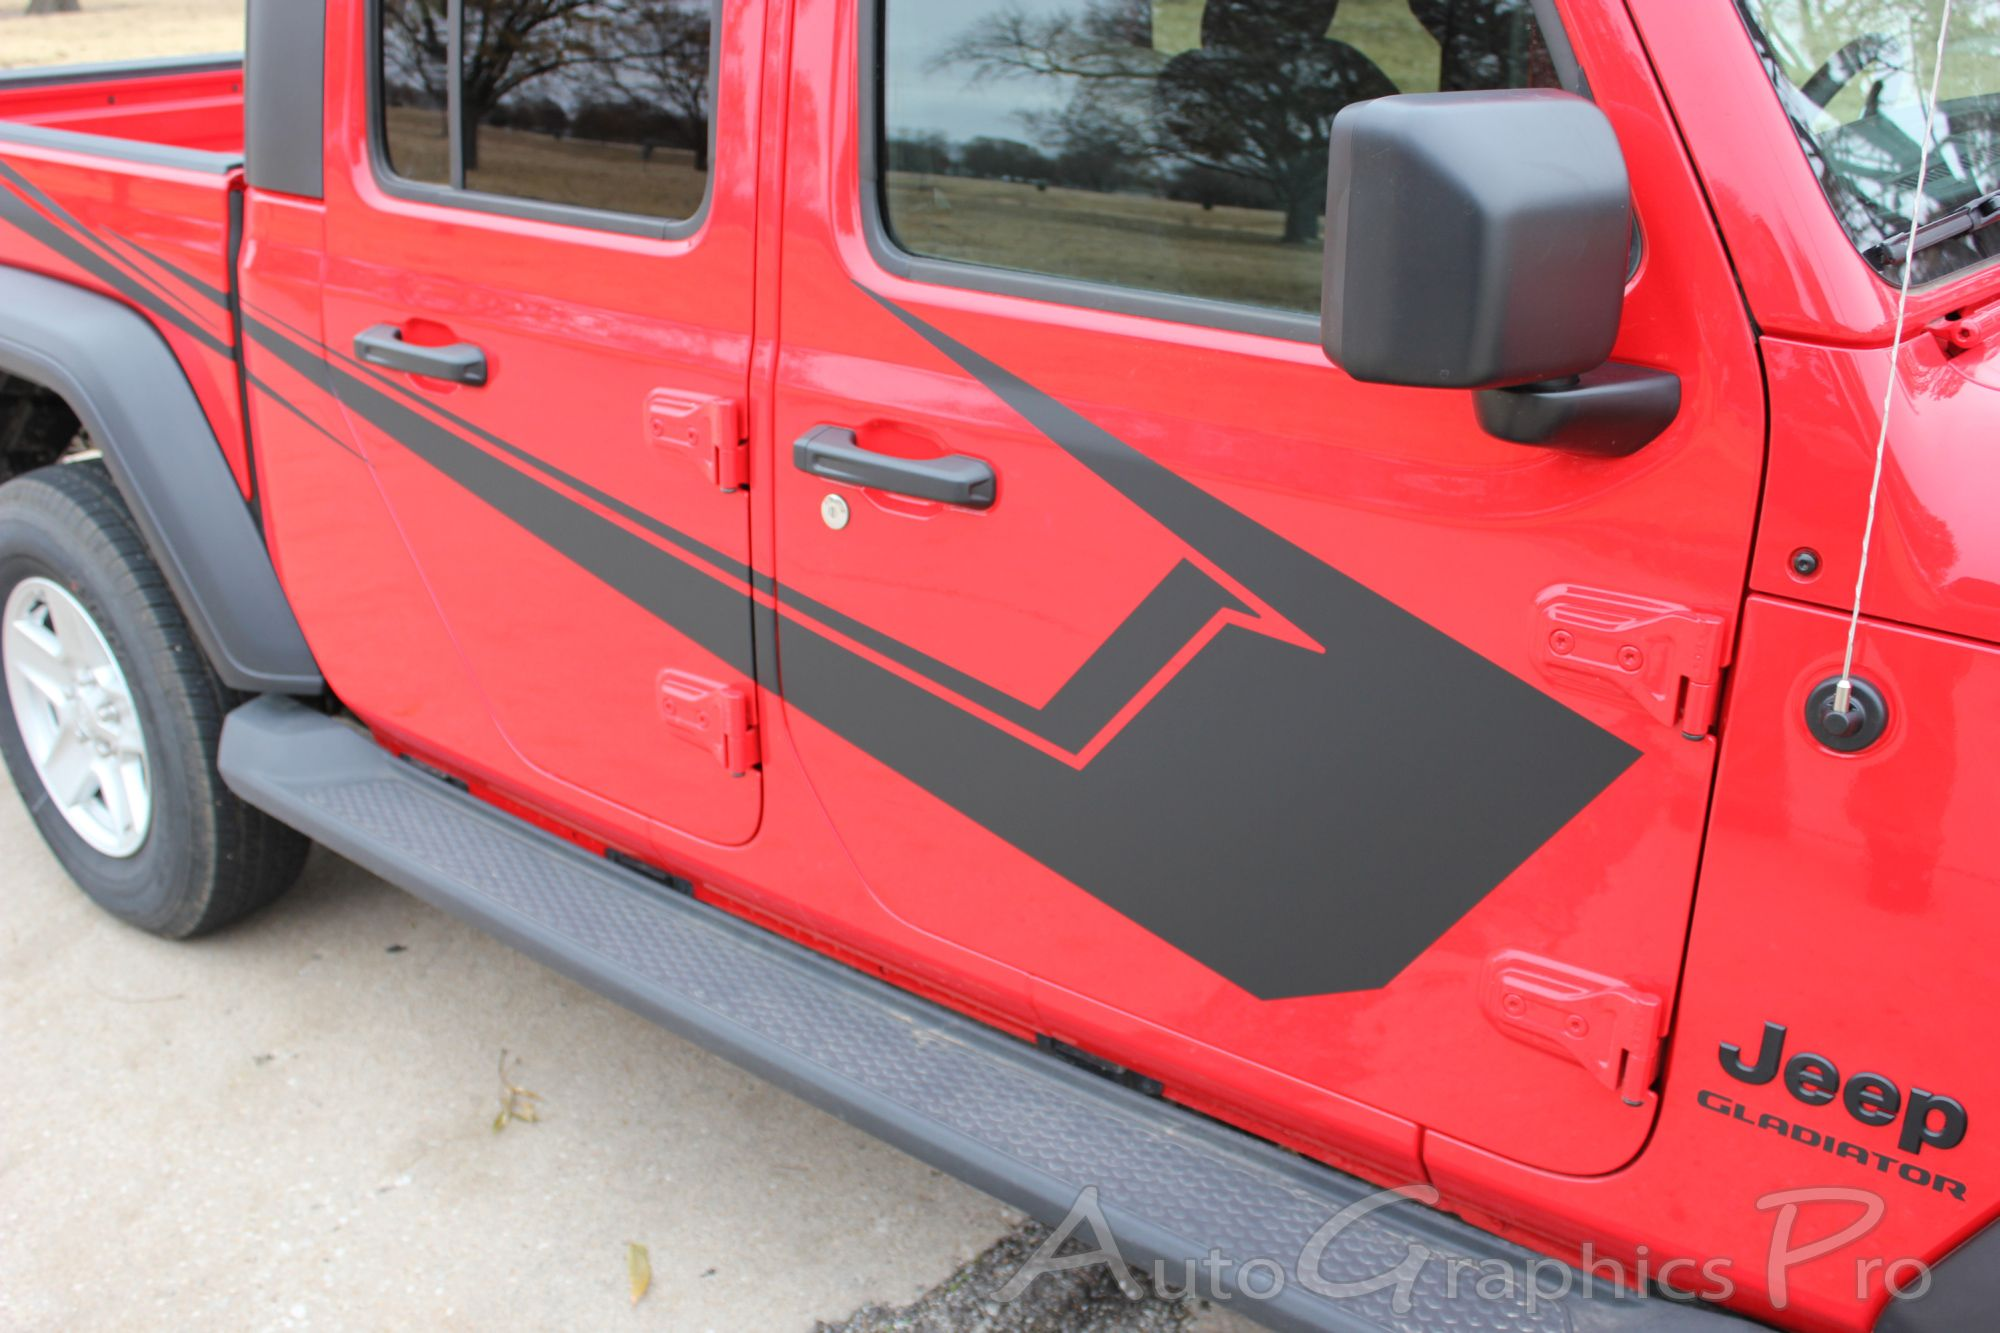 2020 Jeep Gladiator Side Body Vinyl Graphics Paramount Solid Color